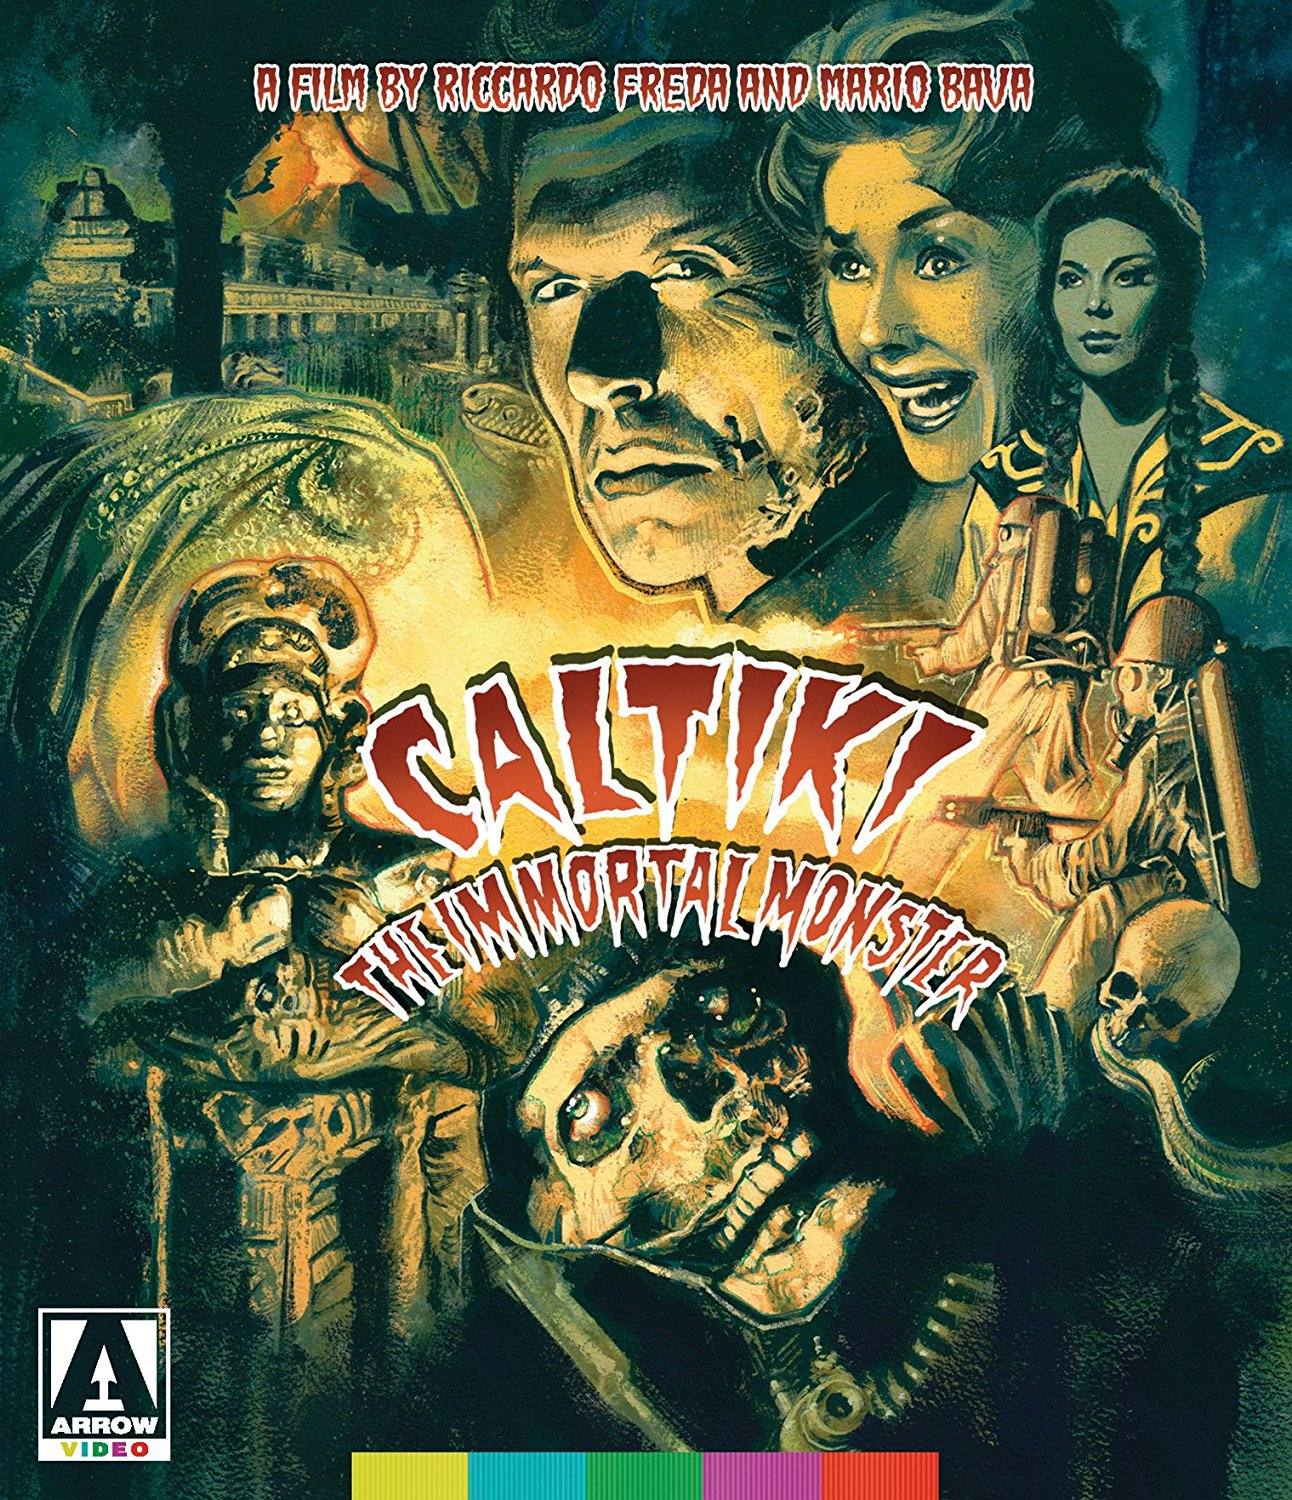 caltiki - Eyegasm: The Best and Worst Home Video Cover Art - 4/25/17